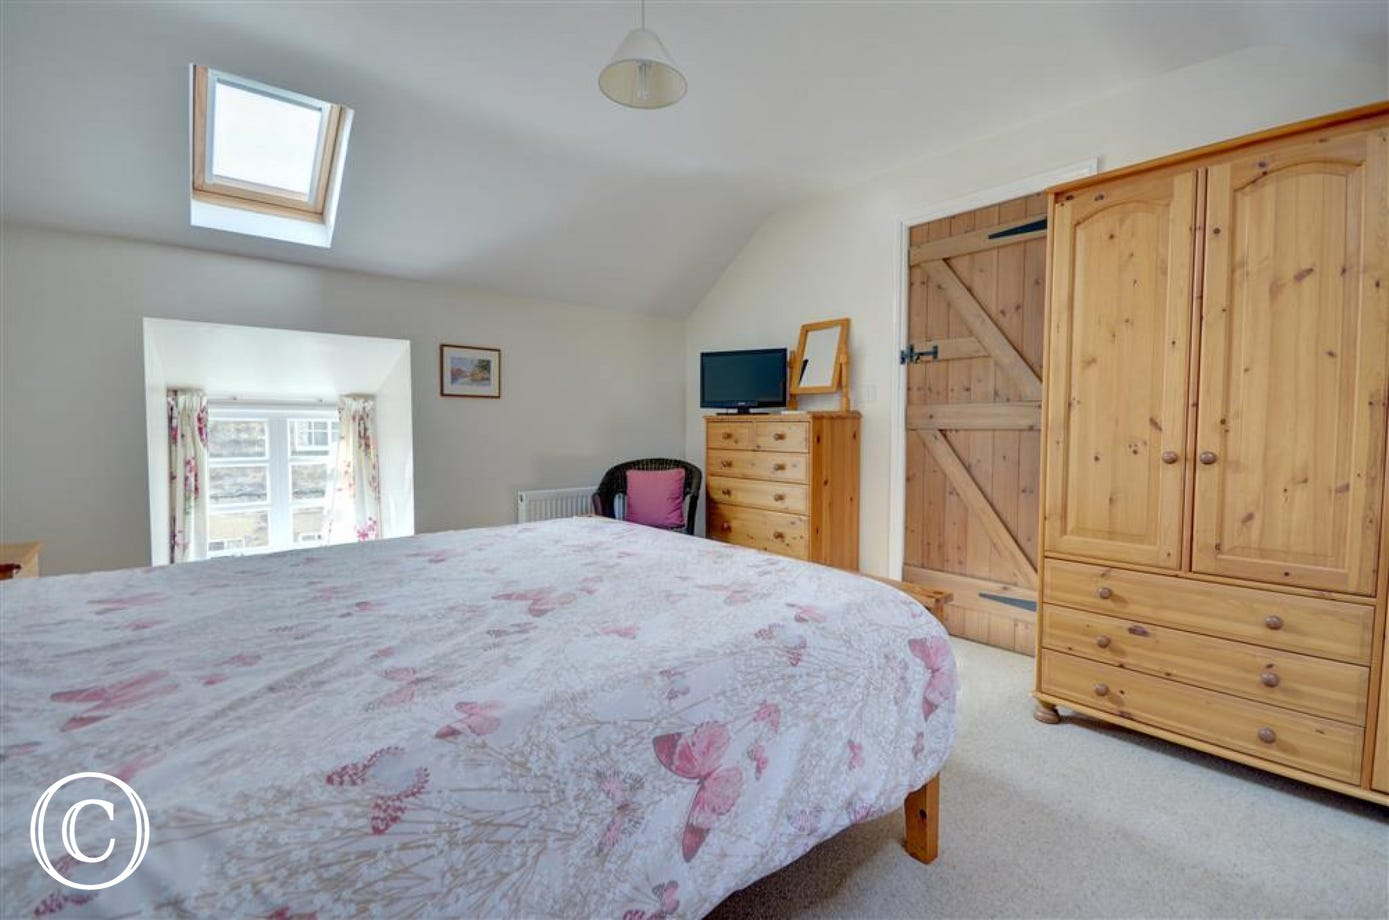 King size bed with wardrobe and chest of draws and Freeview TV.